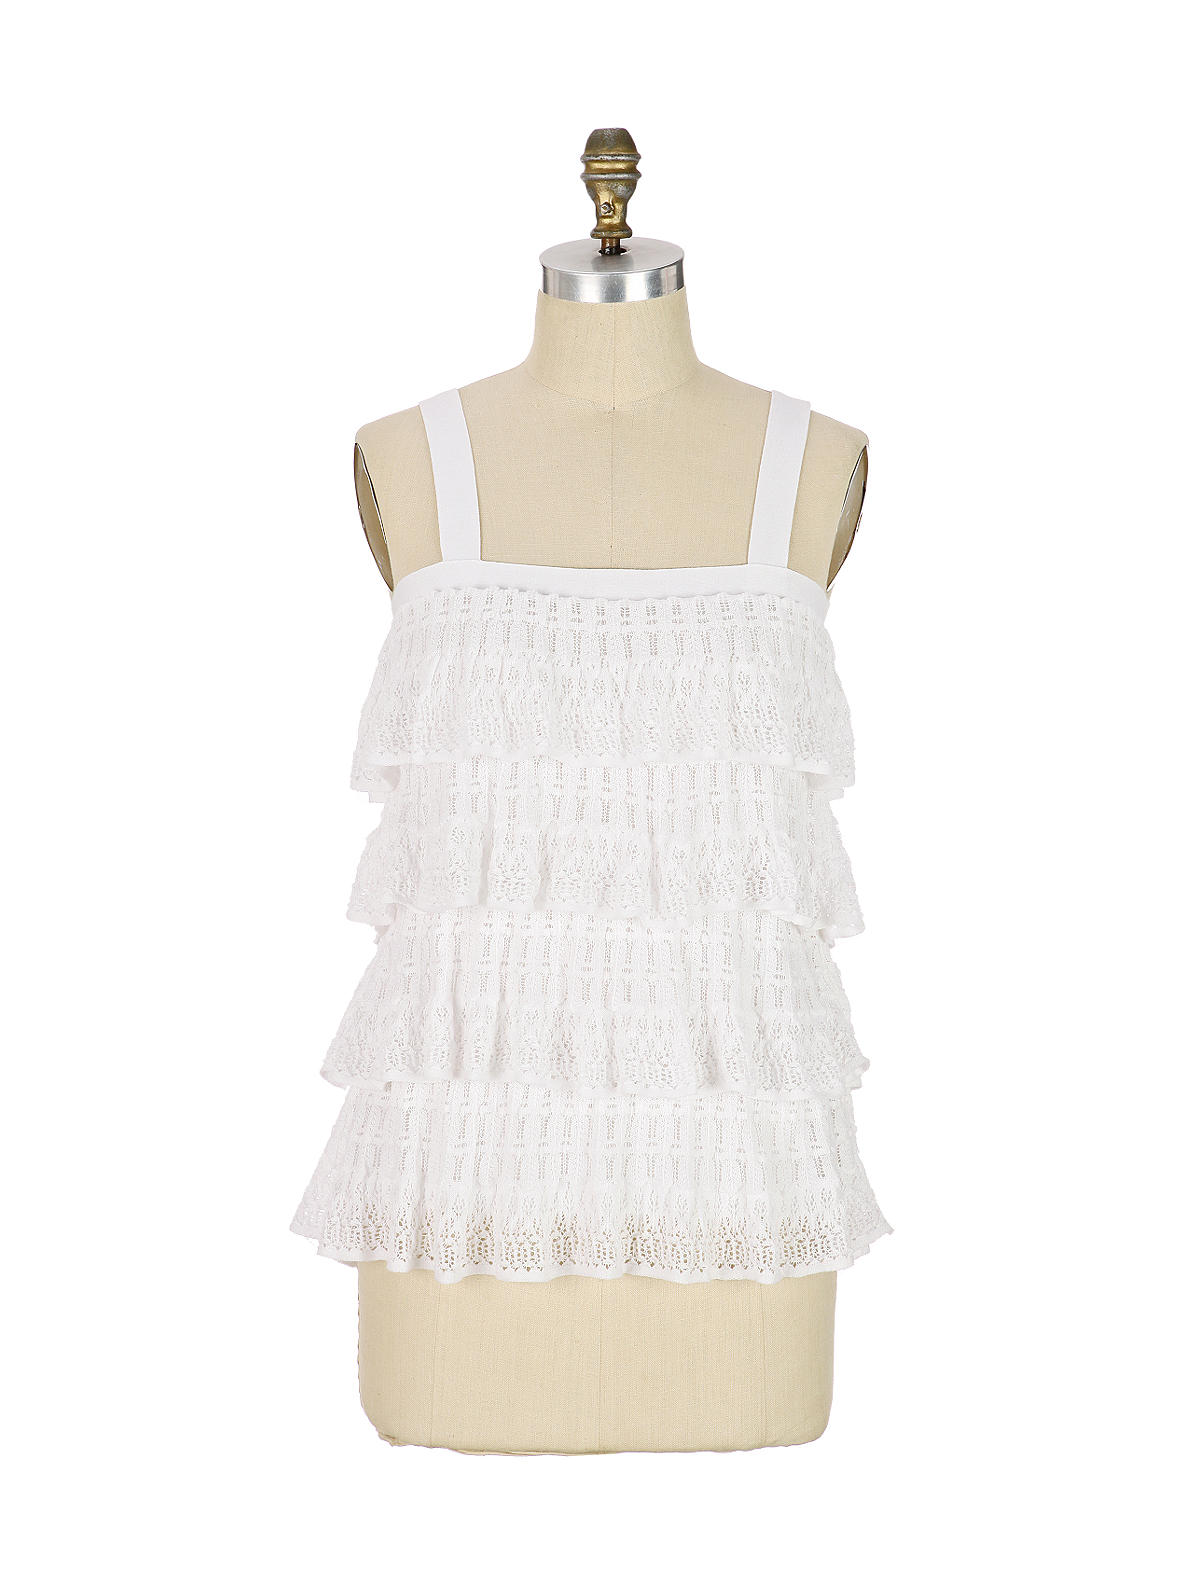 Pointelle Ruffle Tank - Anthropologie.com from anthropologie.com